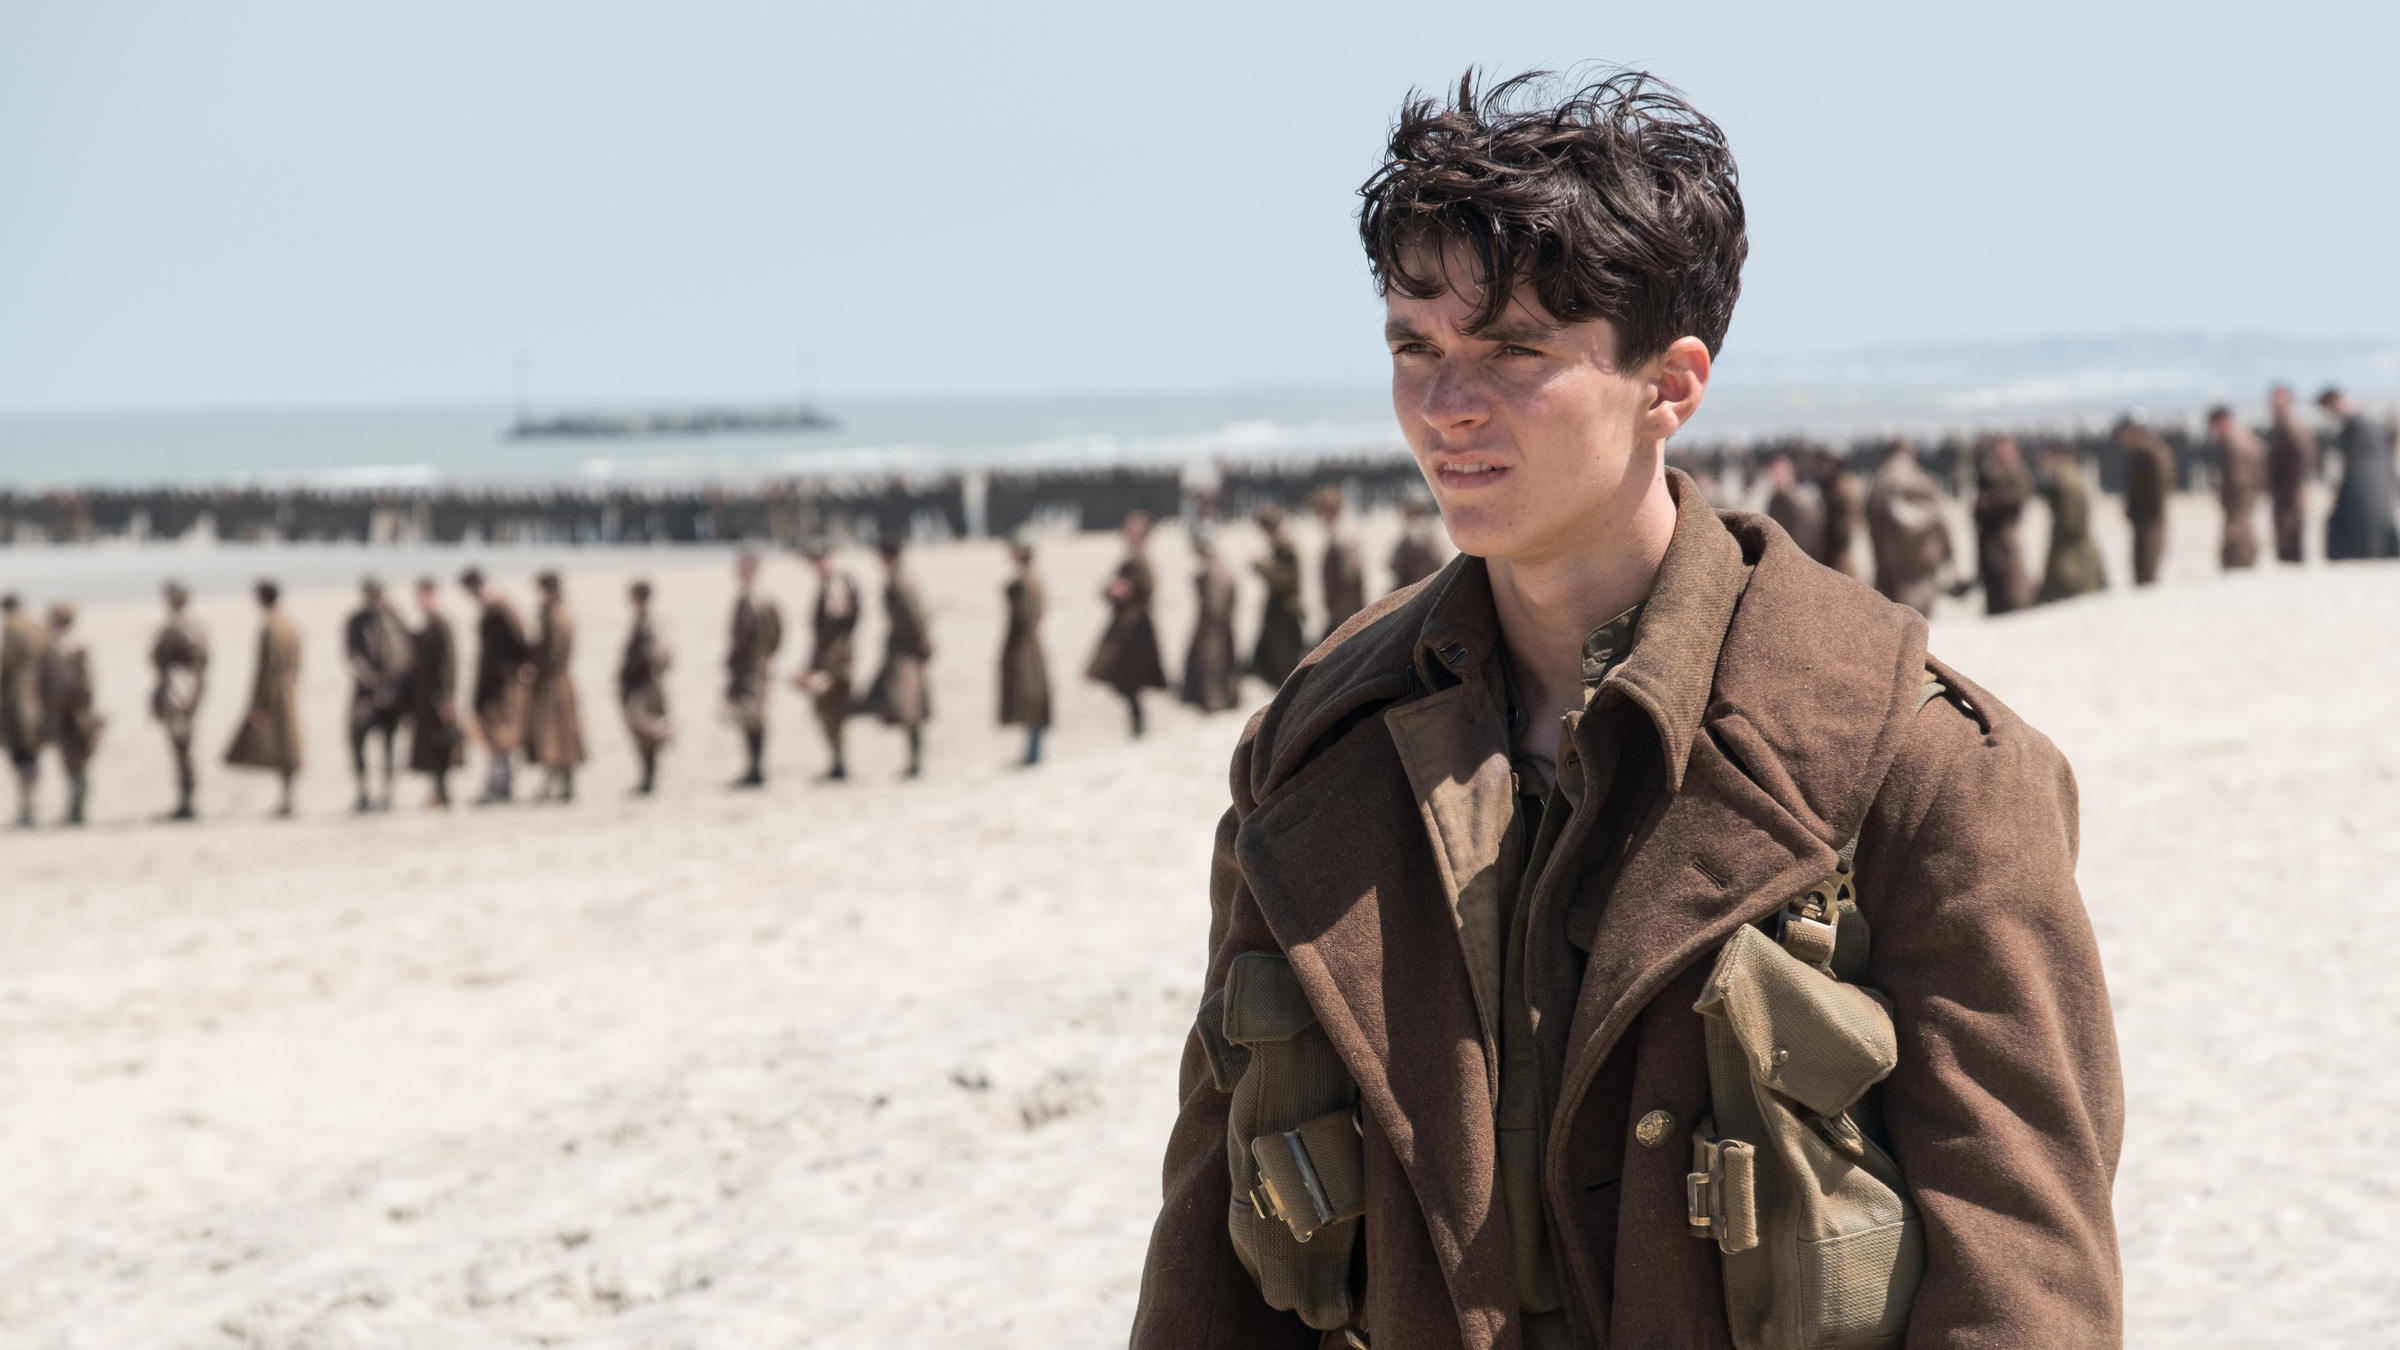 Nolan, Styles team up to tackle WWII battle in 'Dunkirk'